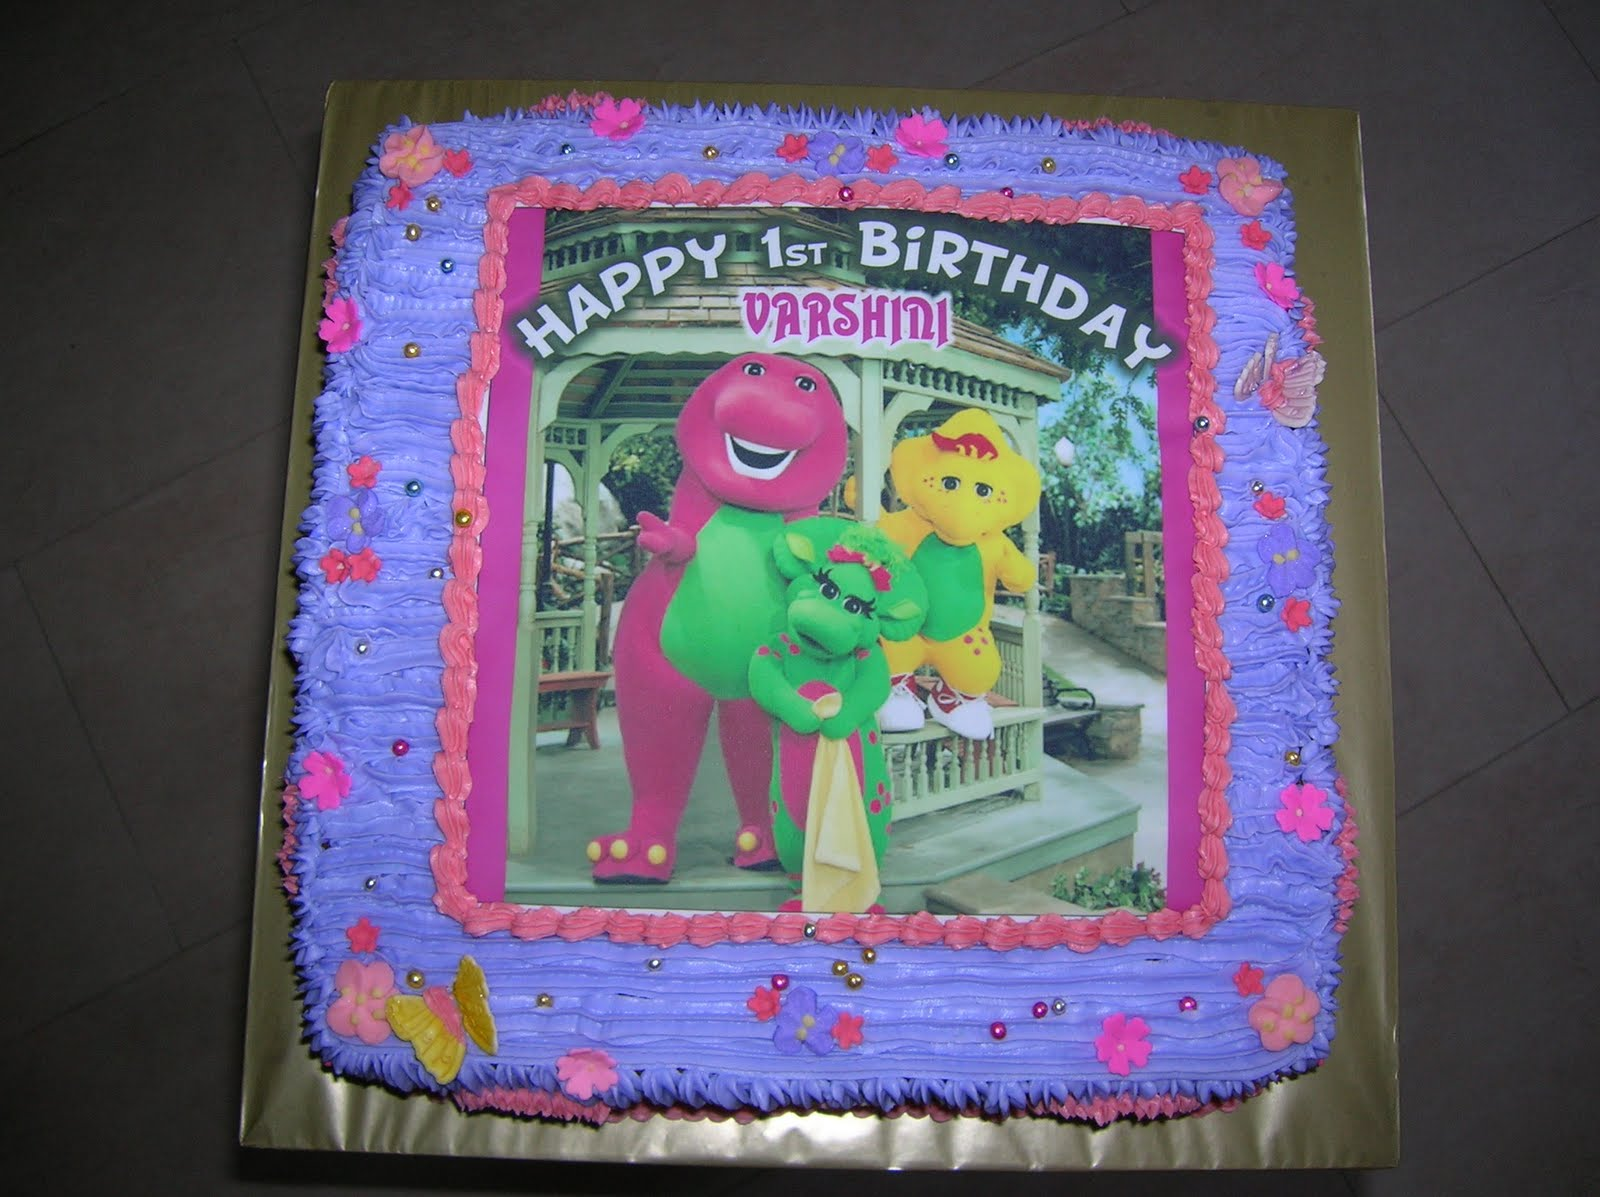 Cakes Cakes N more Barney and friends